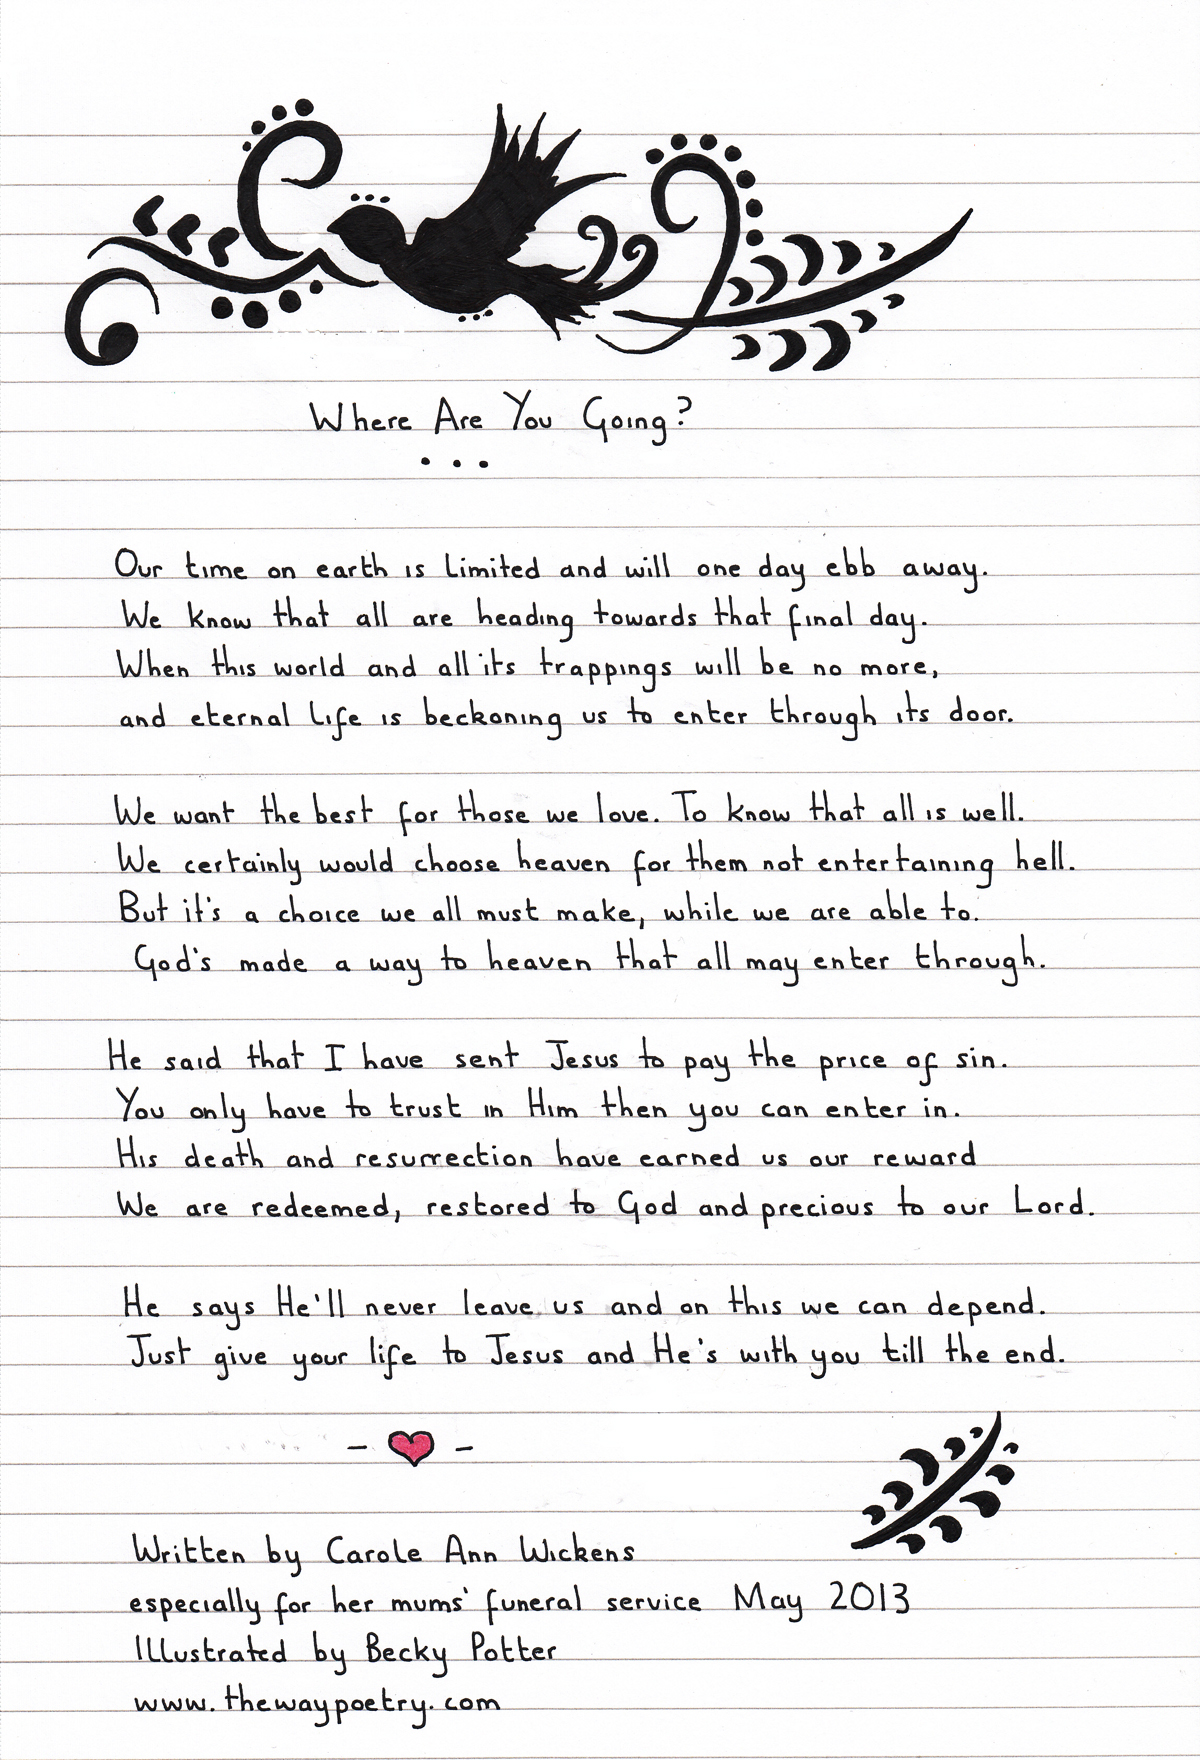 Where Are You Going? by Carole Ann Wickens